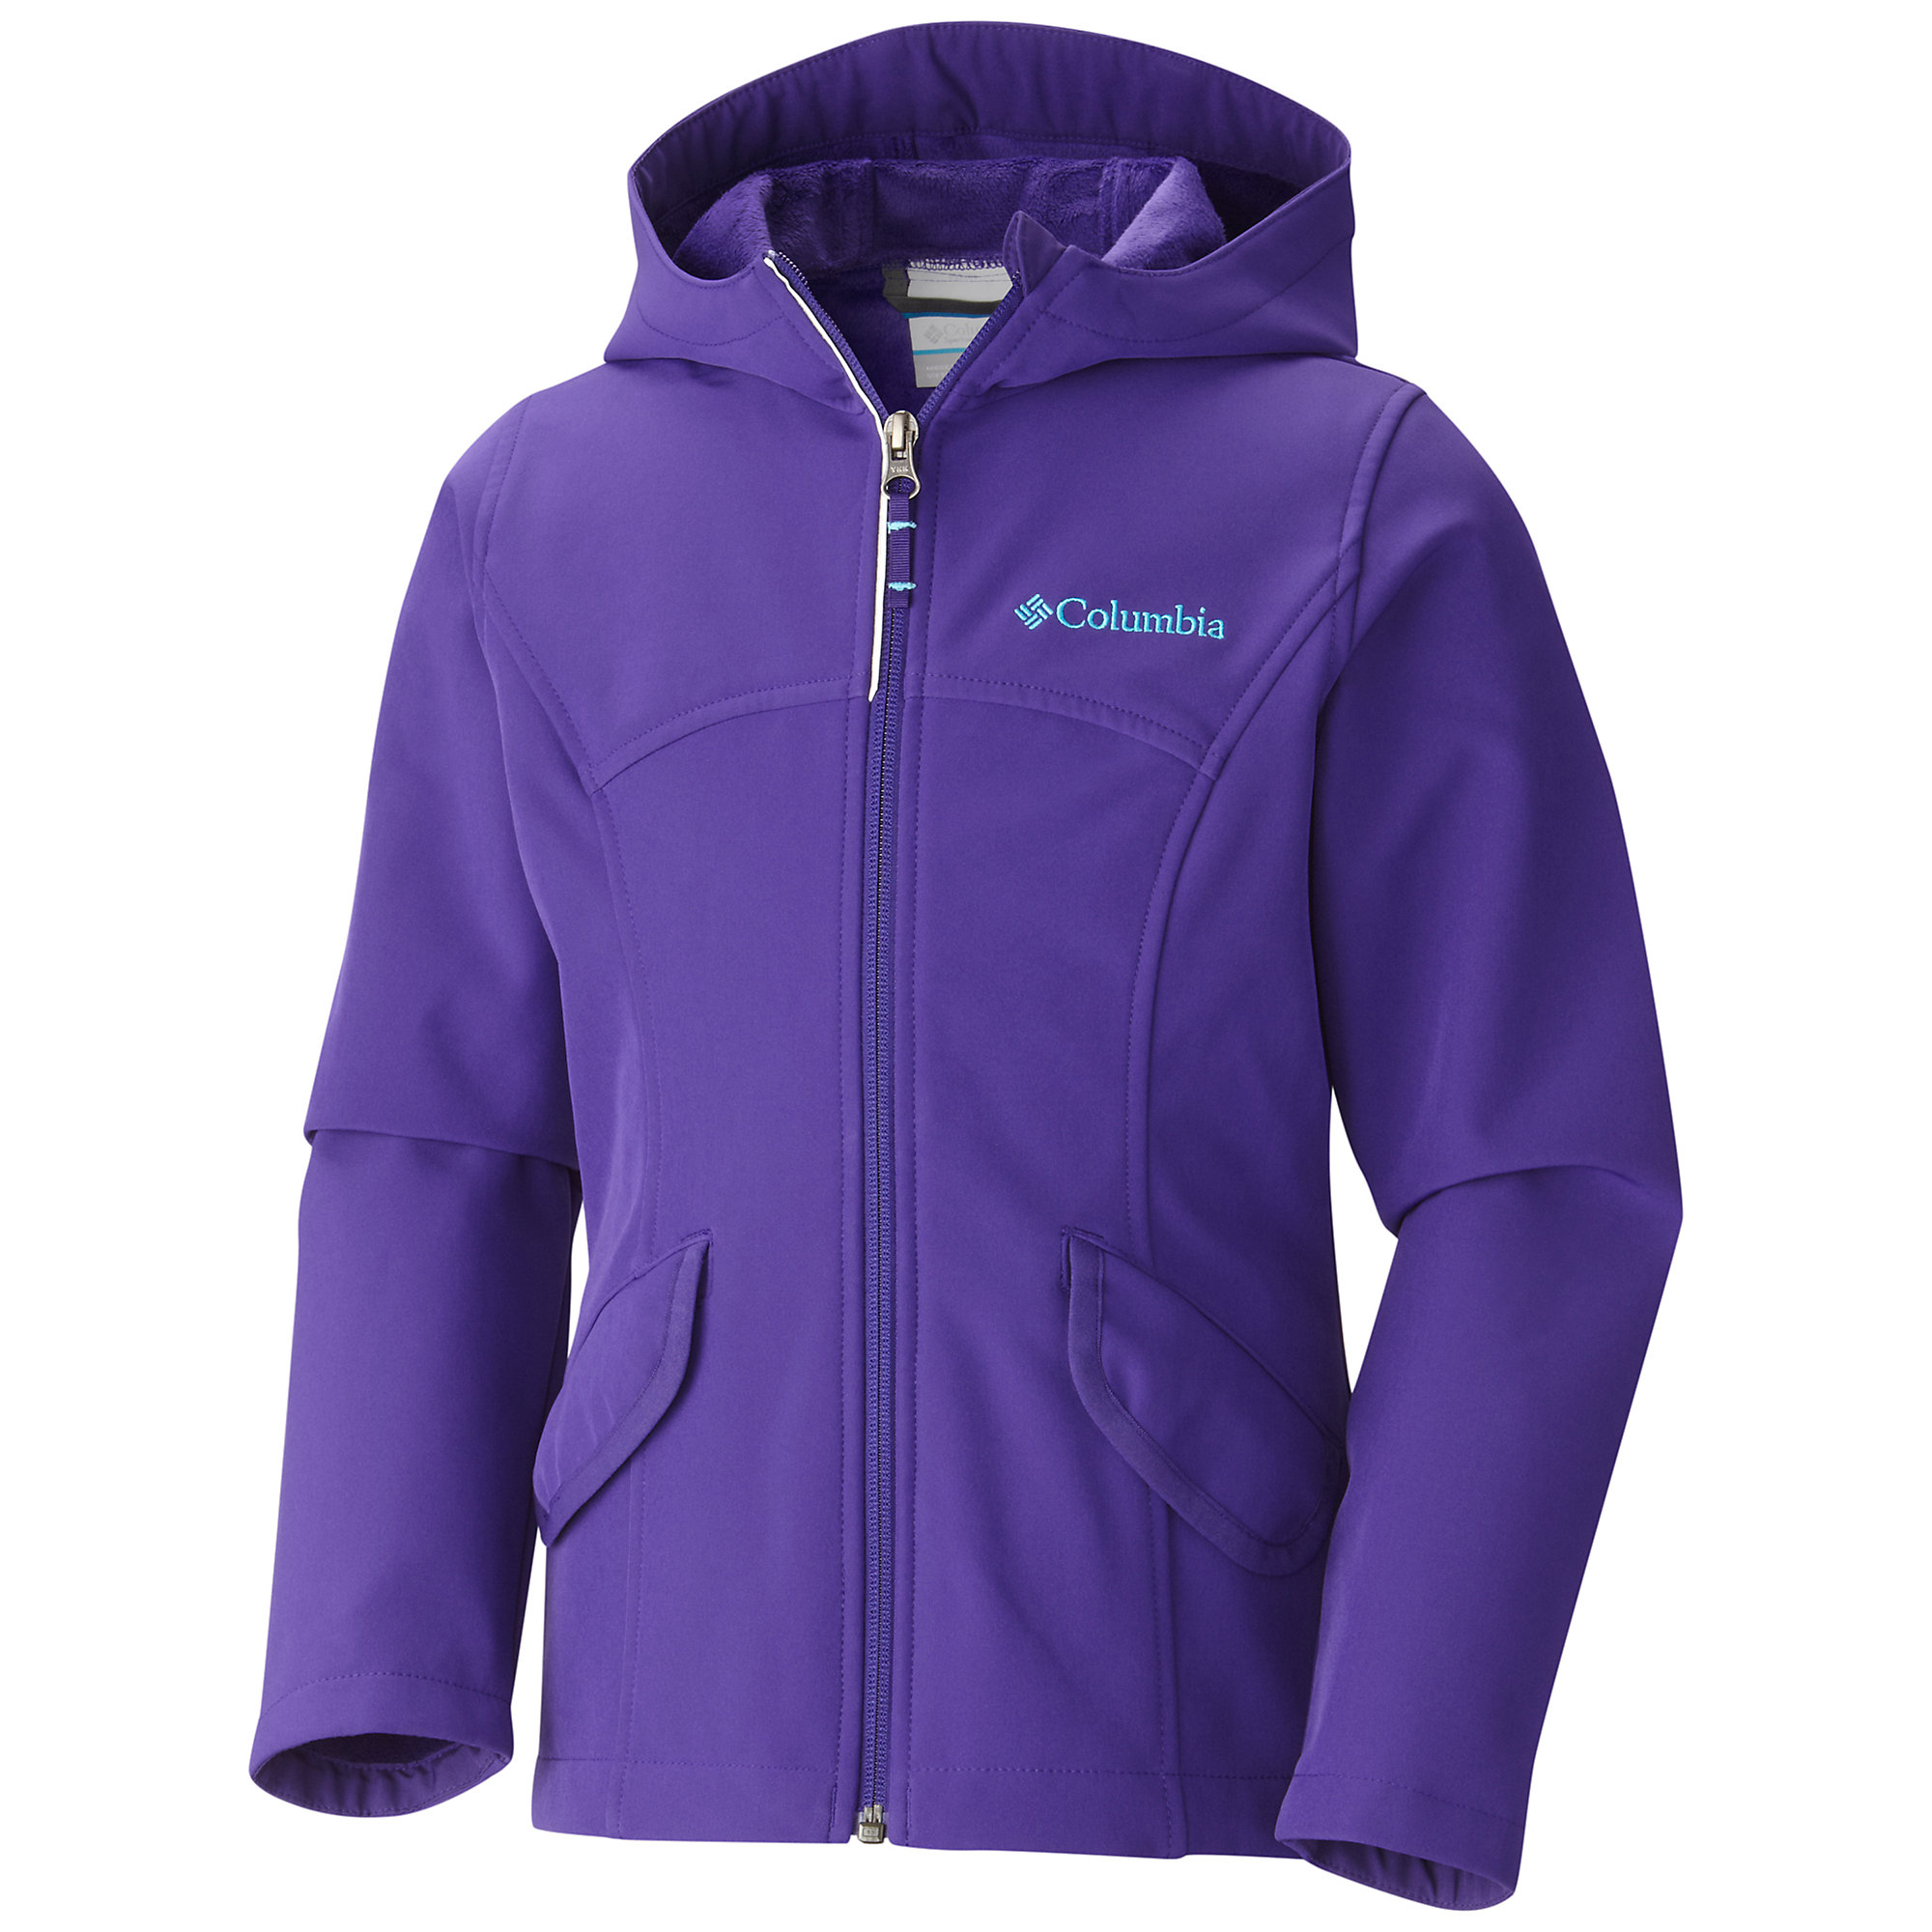 Columbia Phurtec Softshell Hooded Jacket